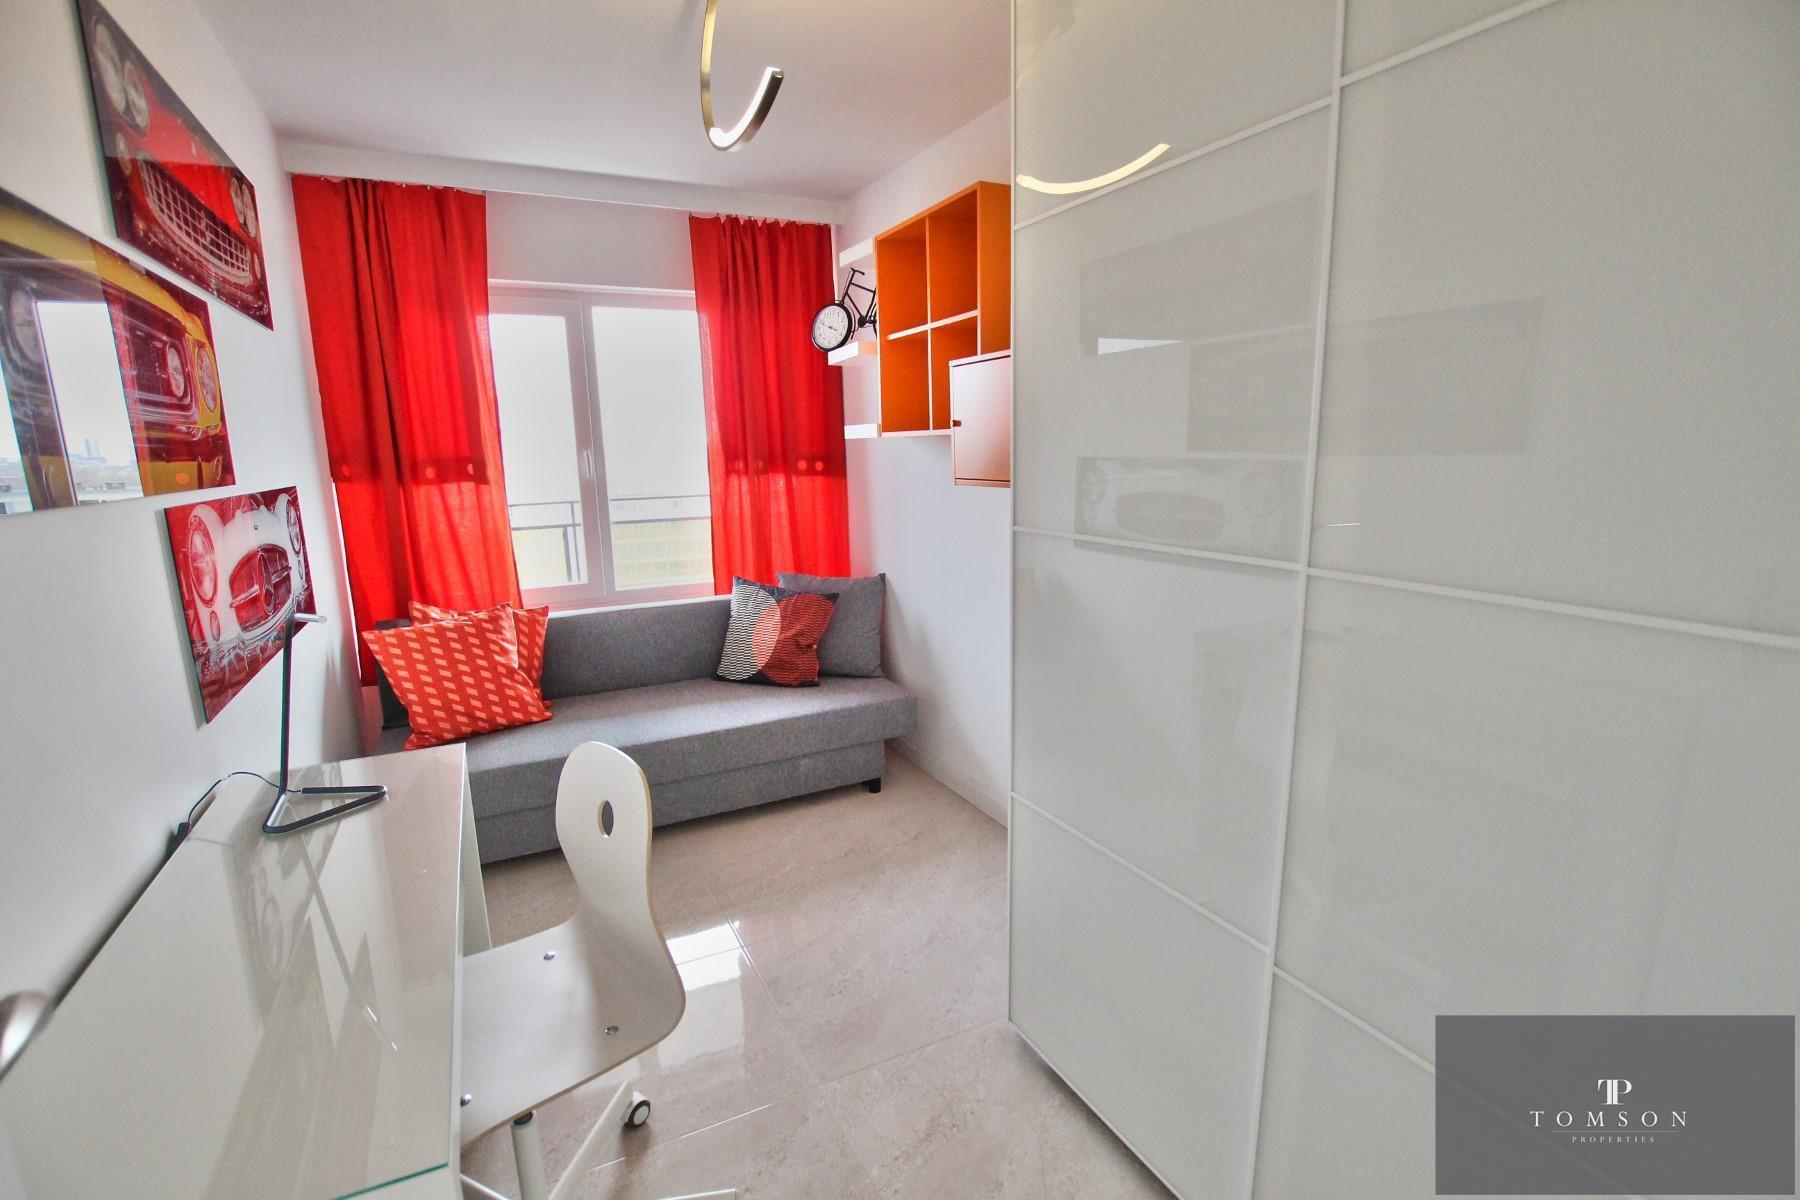 Appartement exceptionnel - Evere - #4530514-8